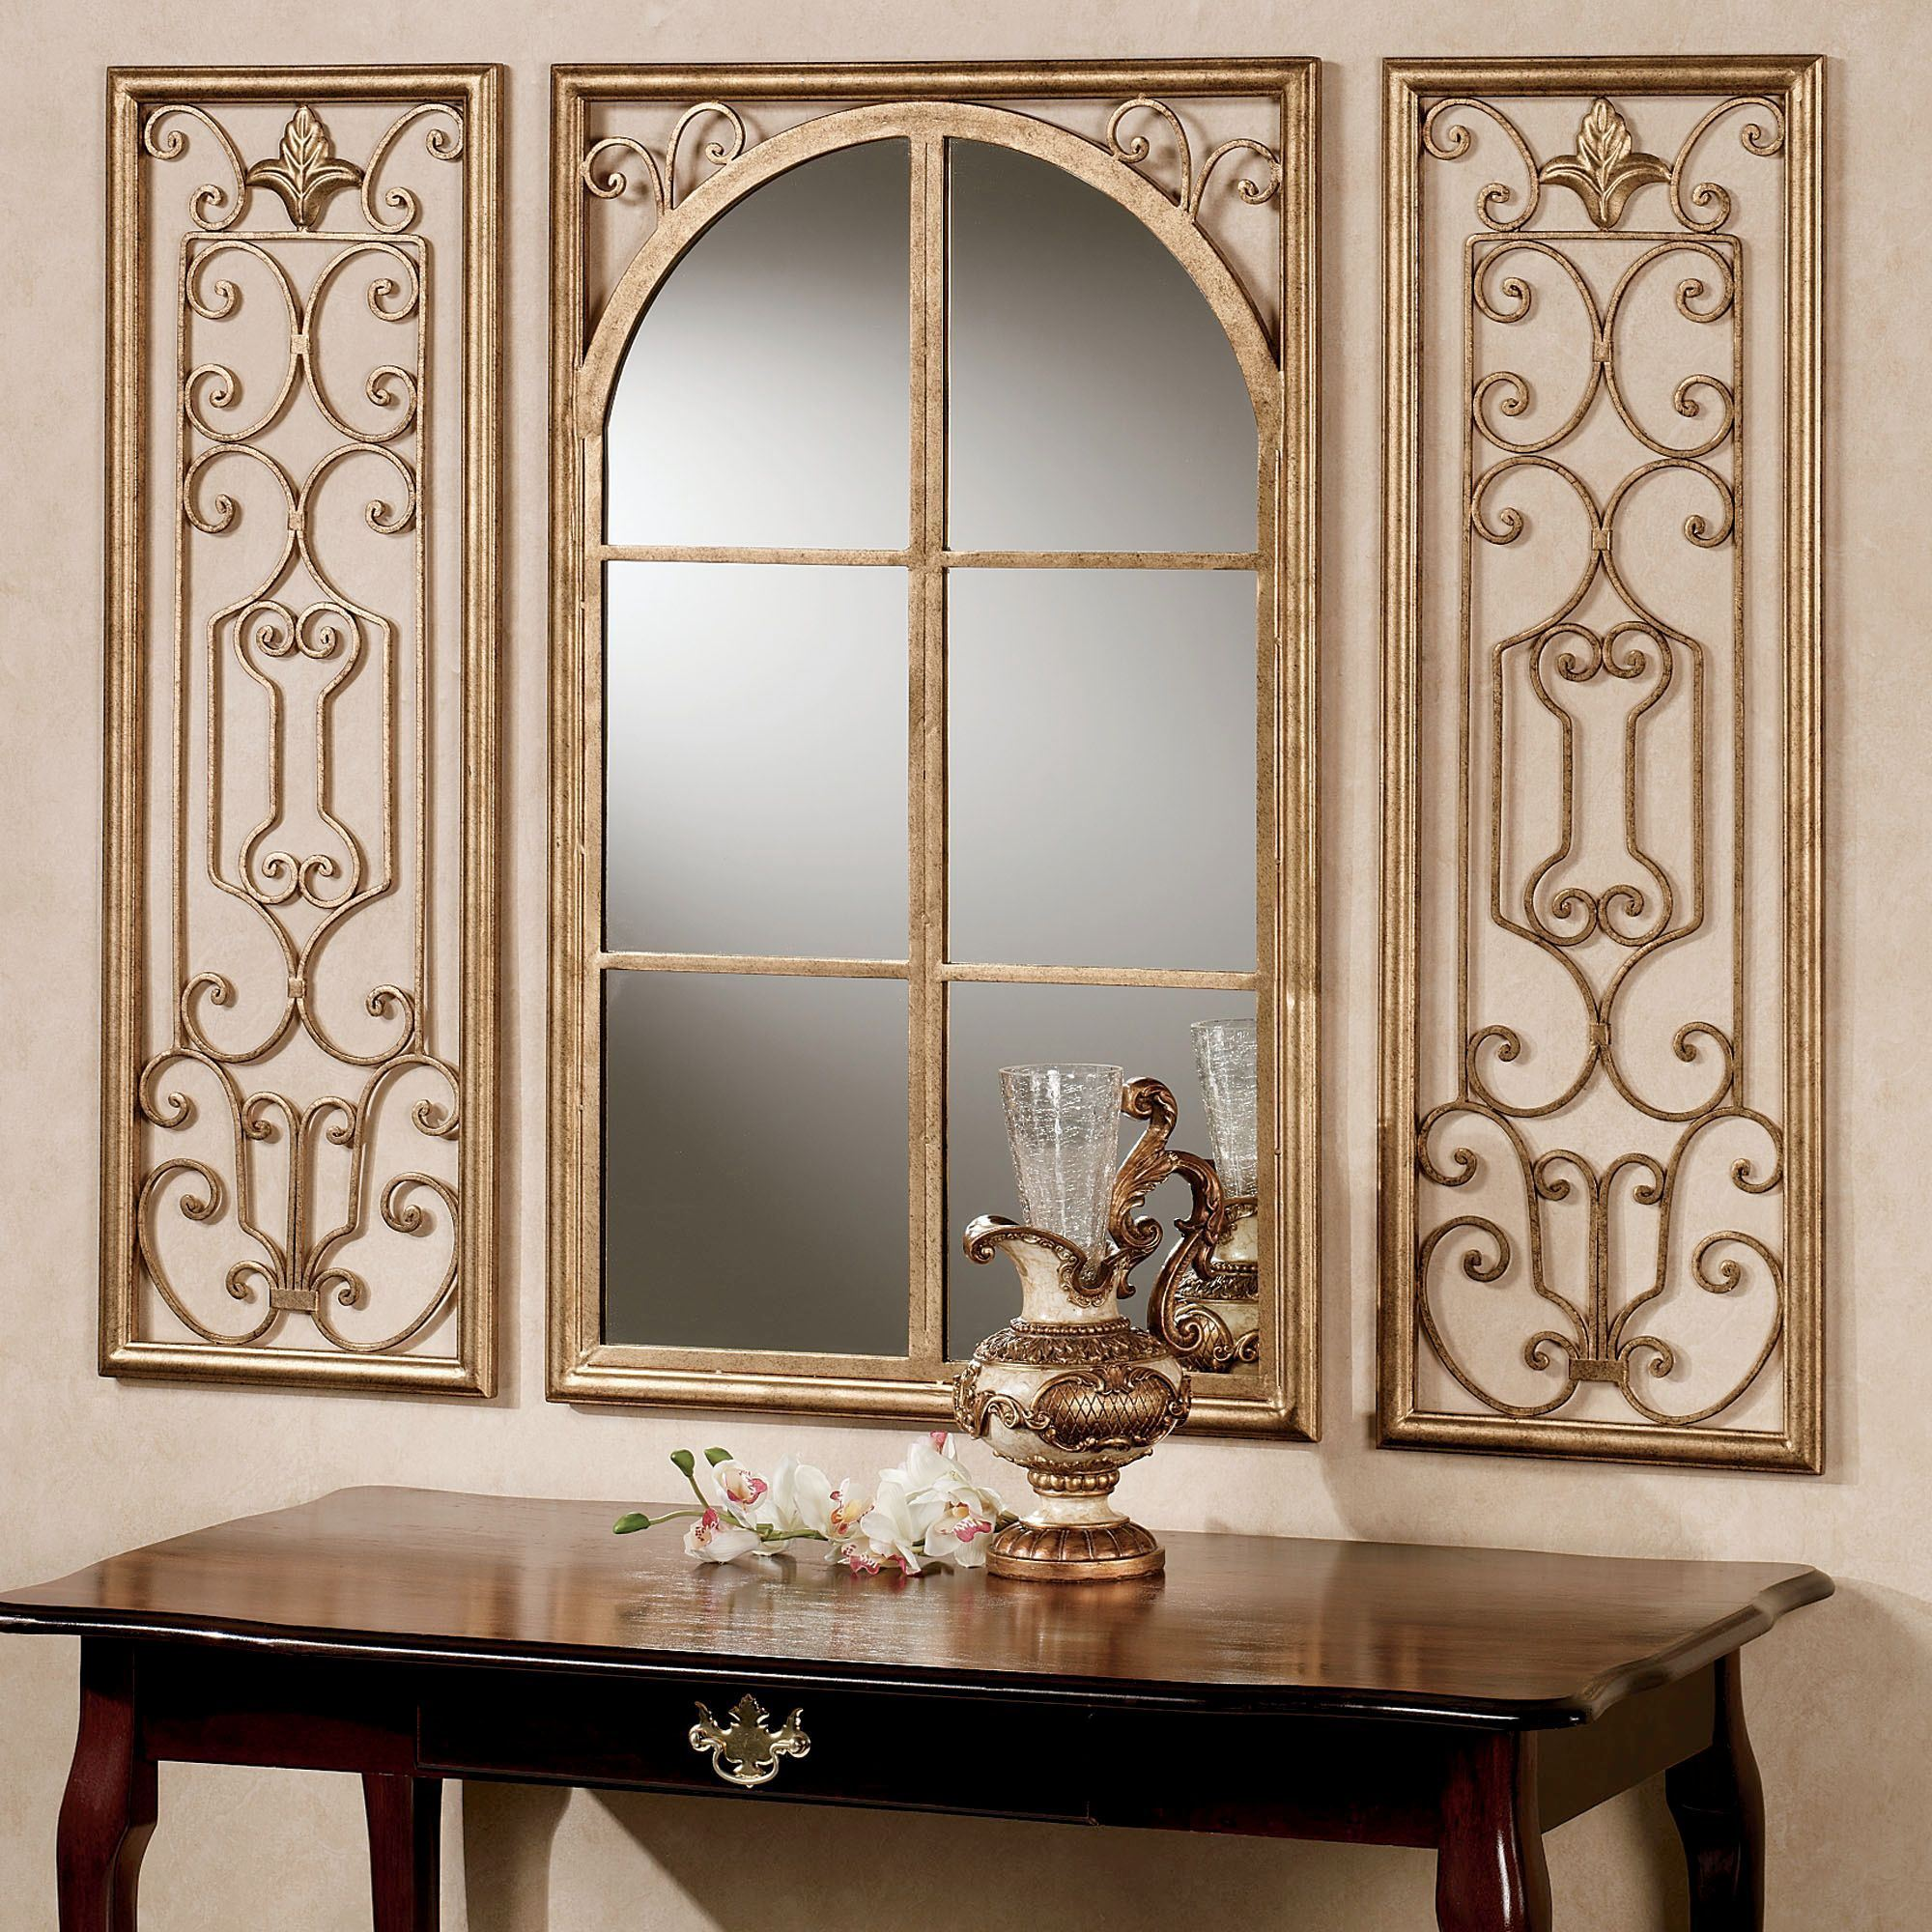 Decorative Mirror Table Provence Antique Gold Finish Wall Mirror Set